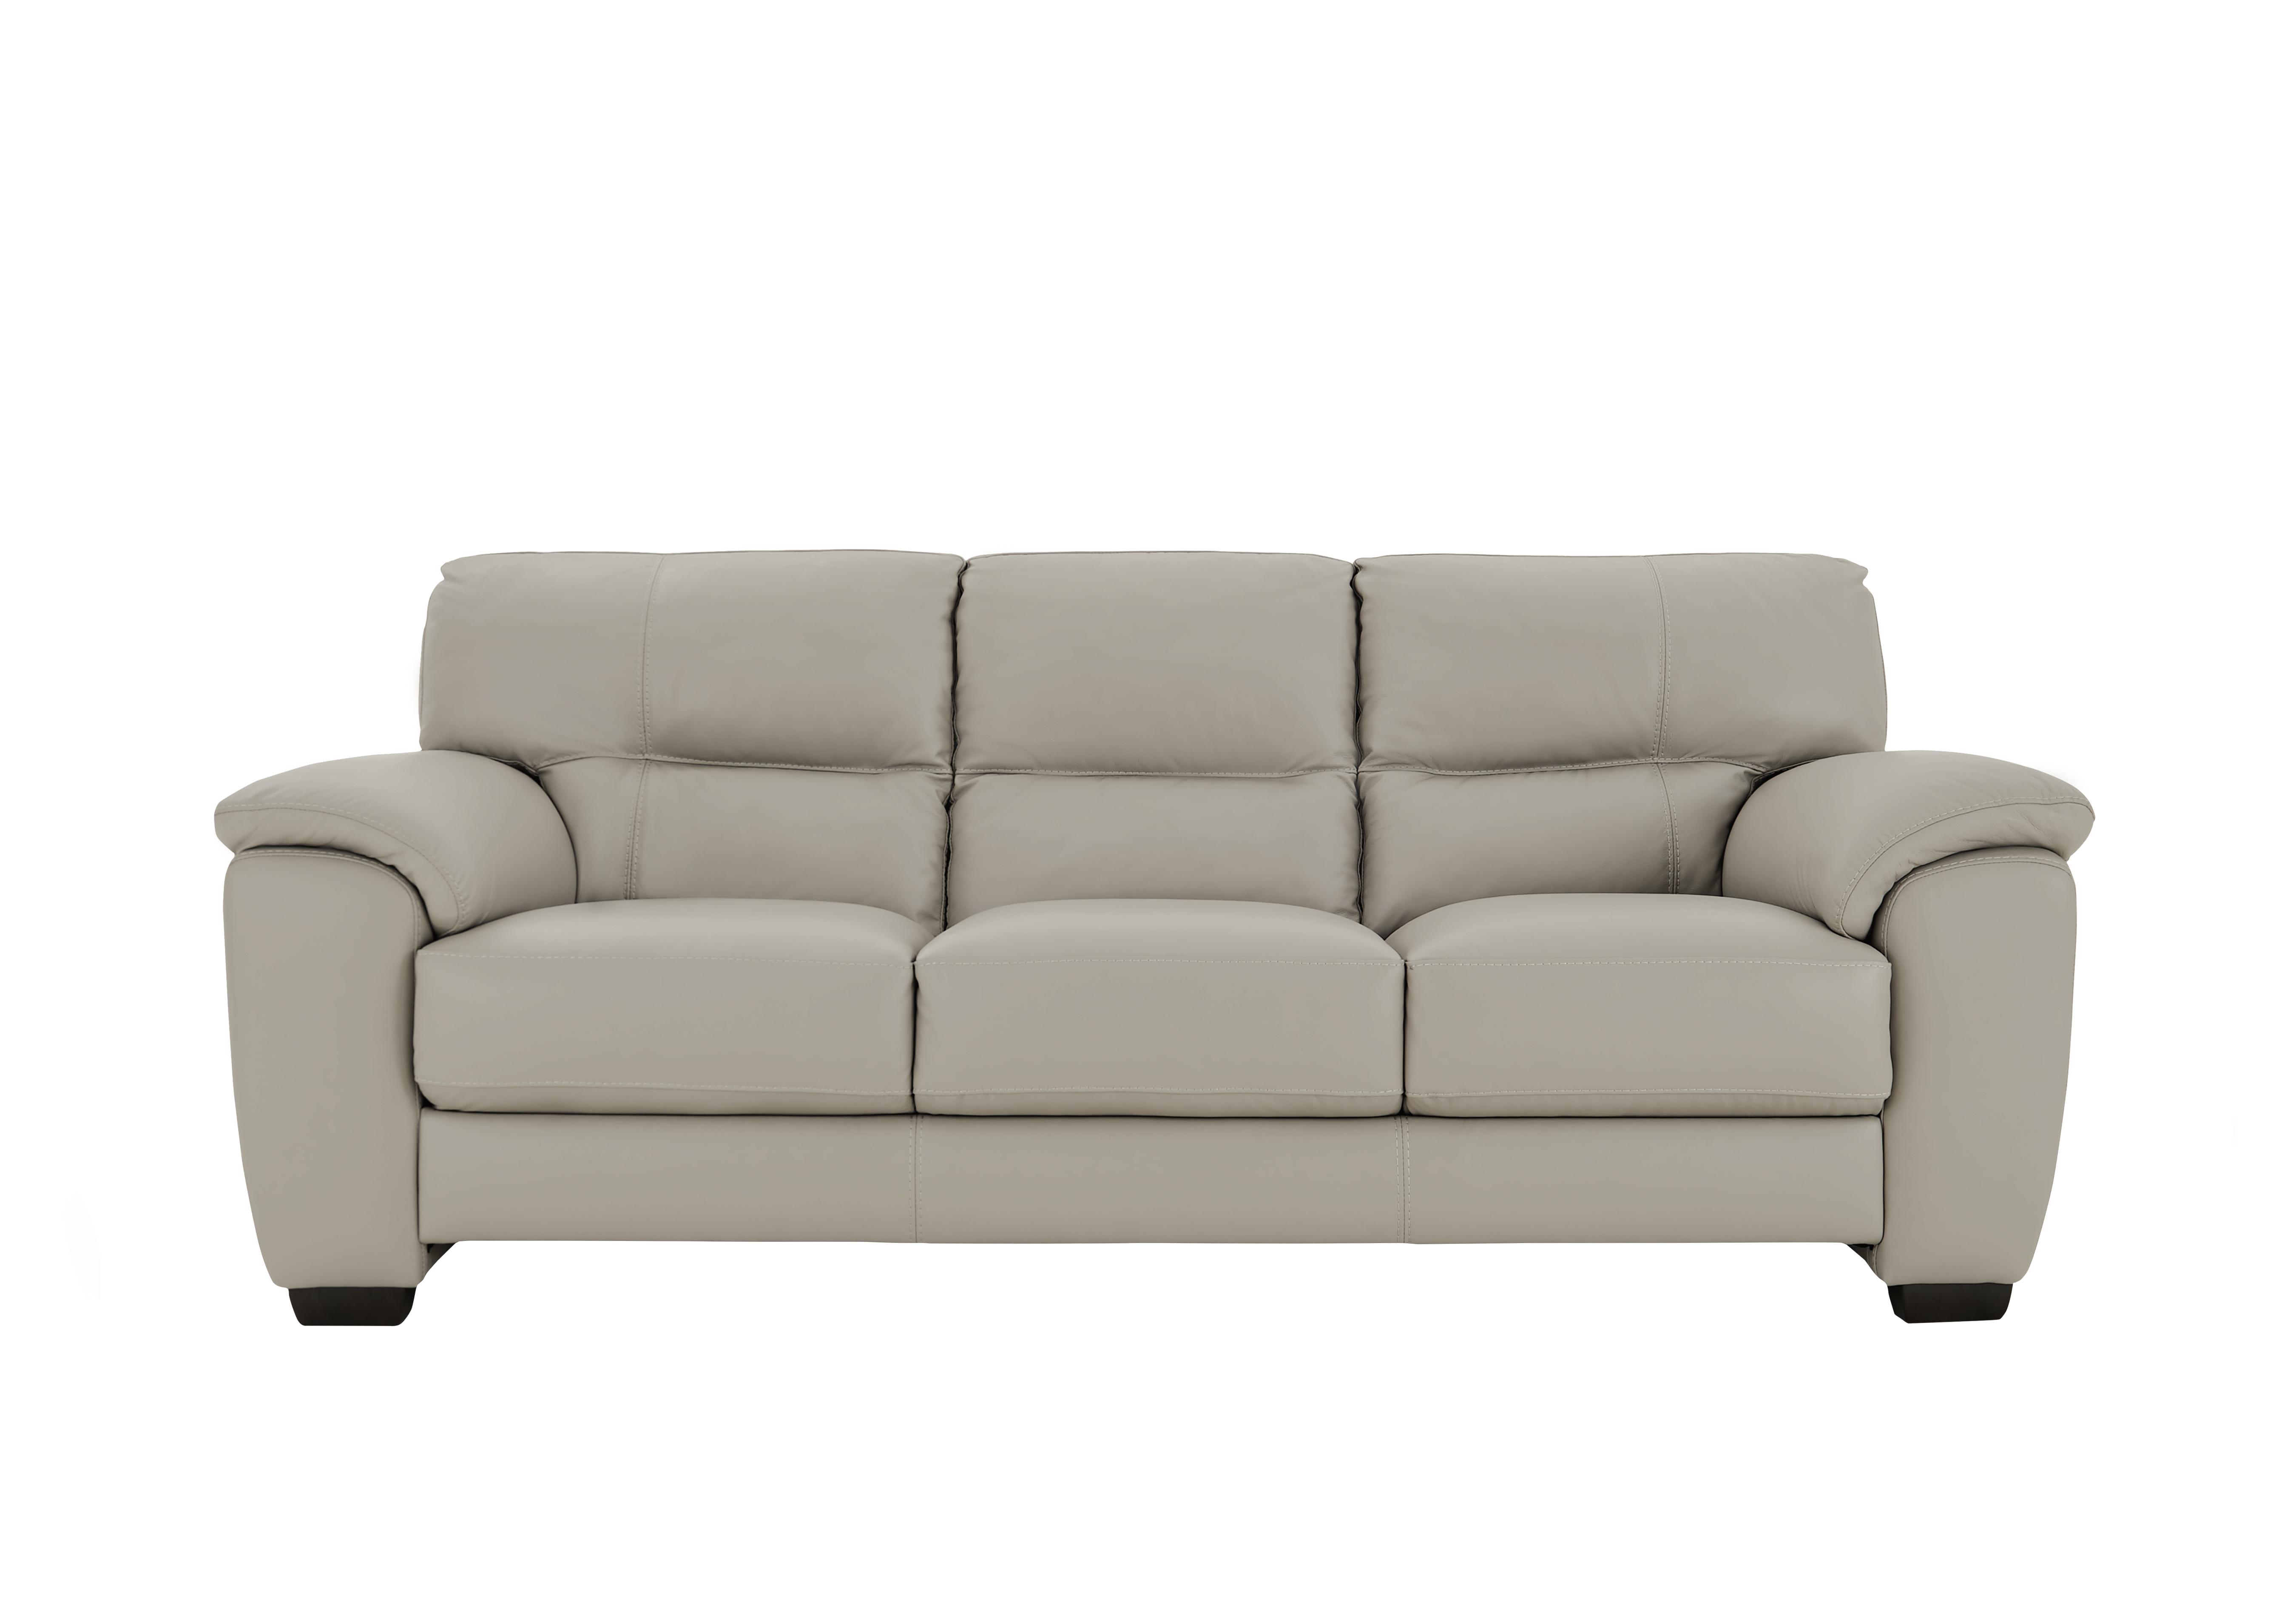 htl sofa stockists uk klippan four seat review shades 3 seater cushion leather furniture village world of